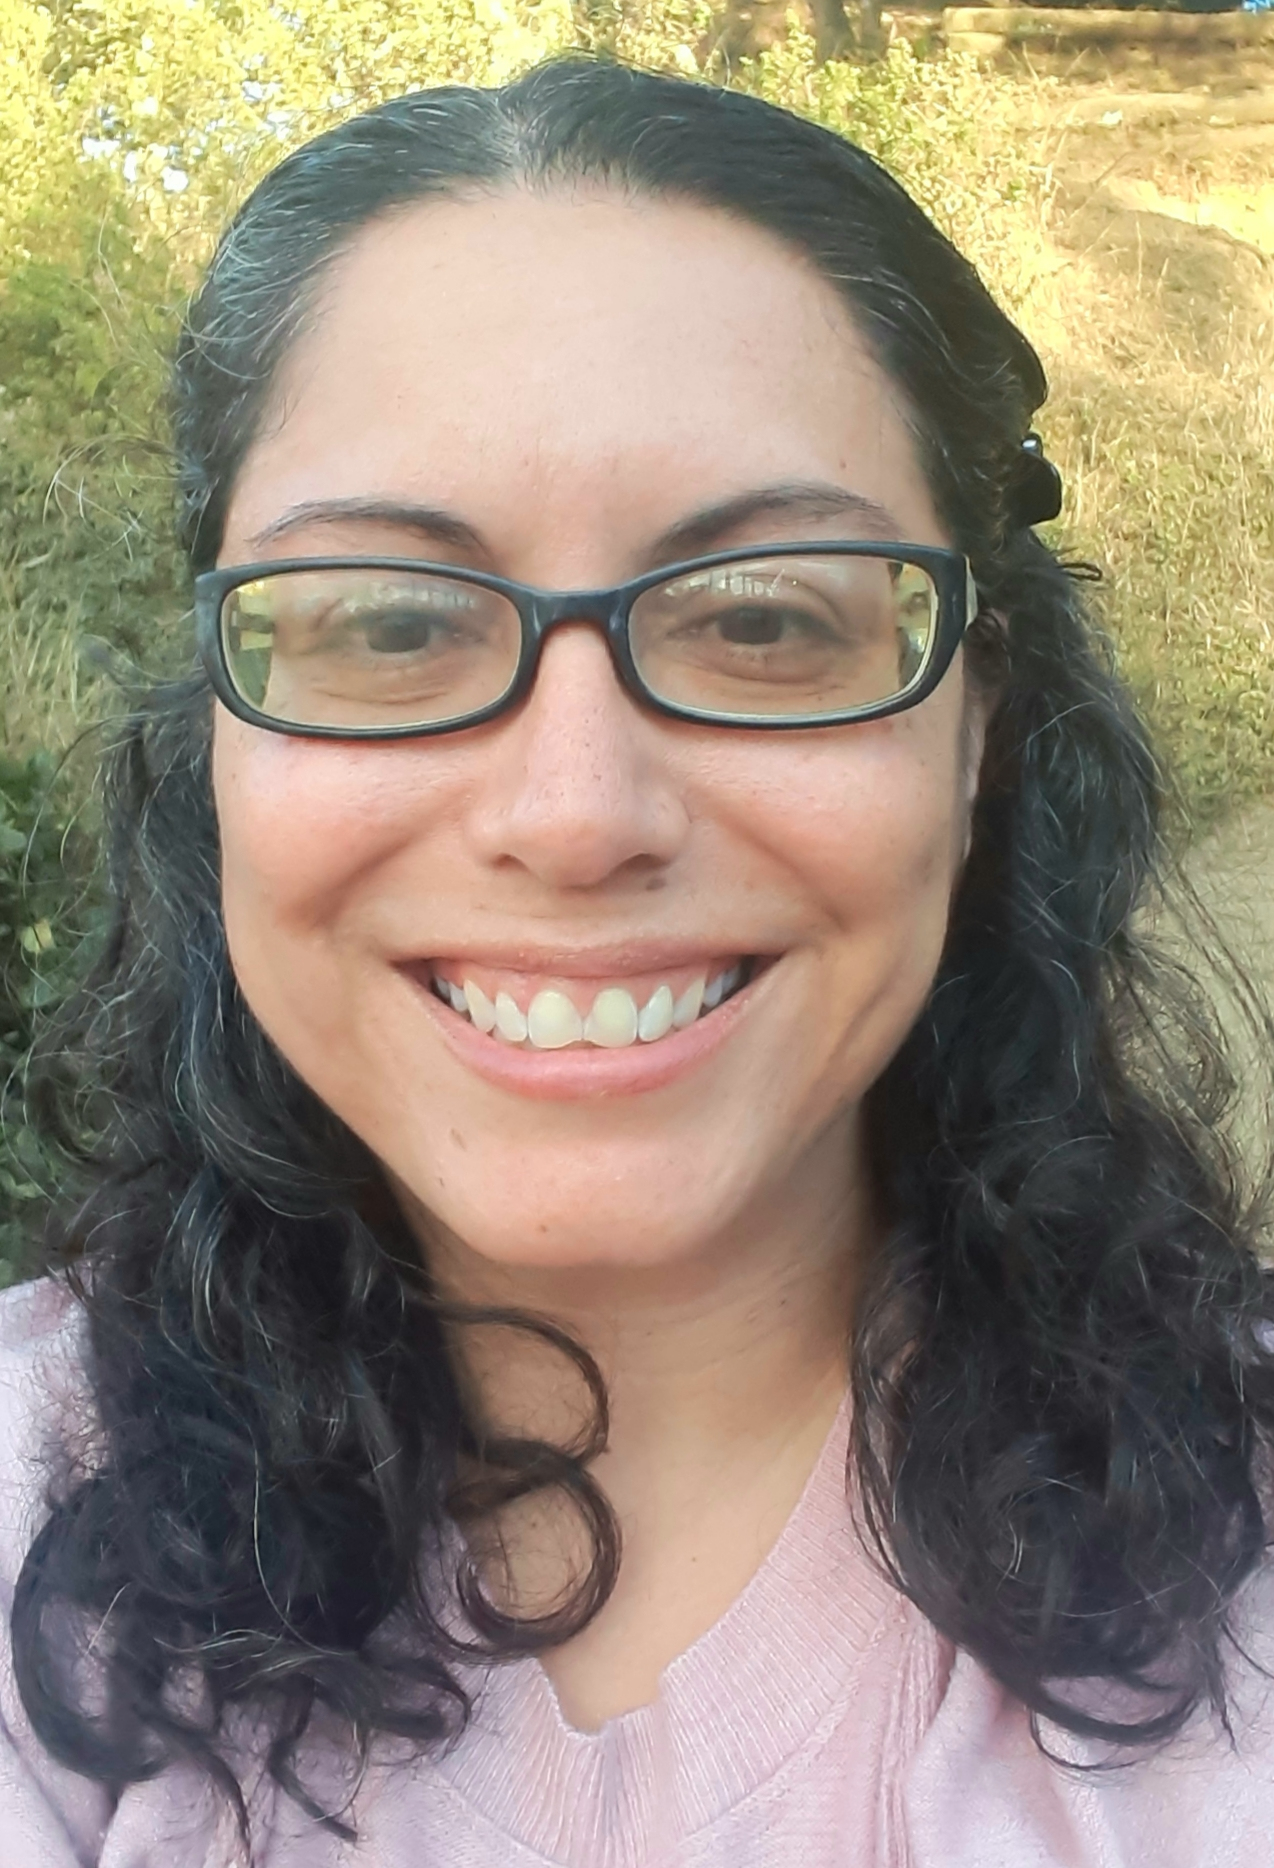 Photo of smiling woman with glasses, black and gray wavy hair and dark brown eyes.